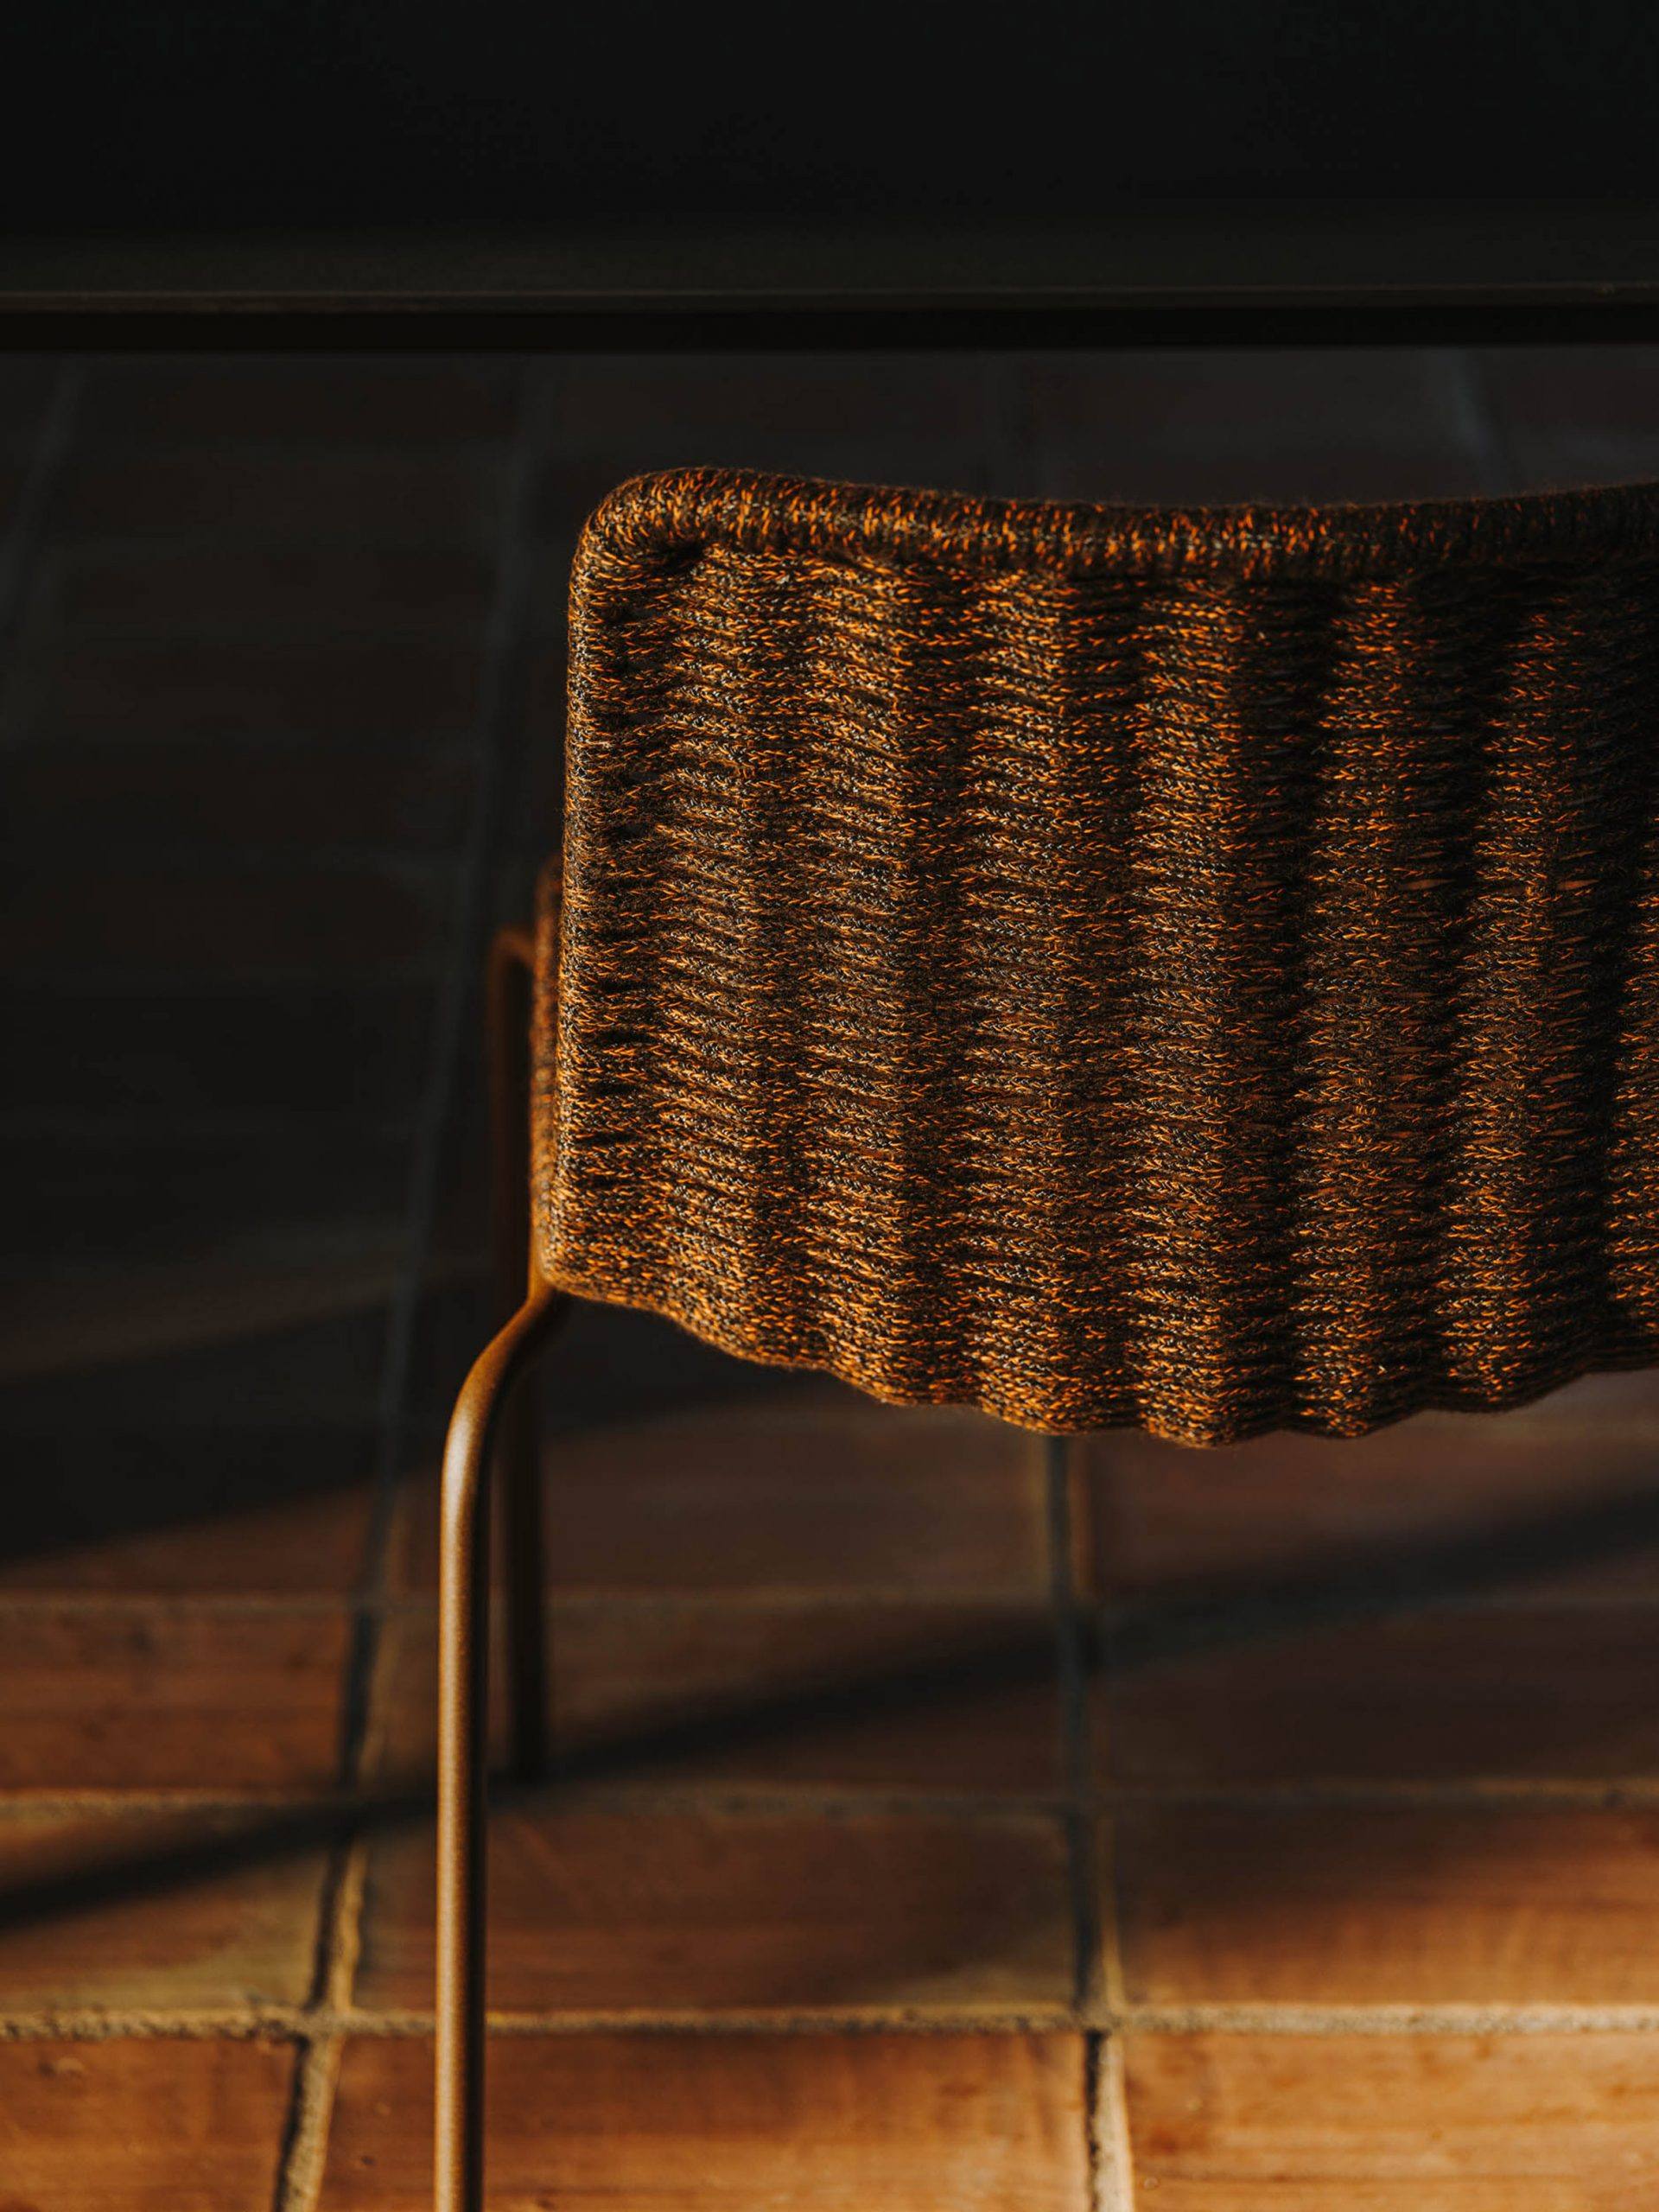 The seat and backrest are handwoven with a tightly braided weather-resistant nautical rope